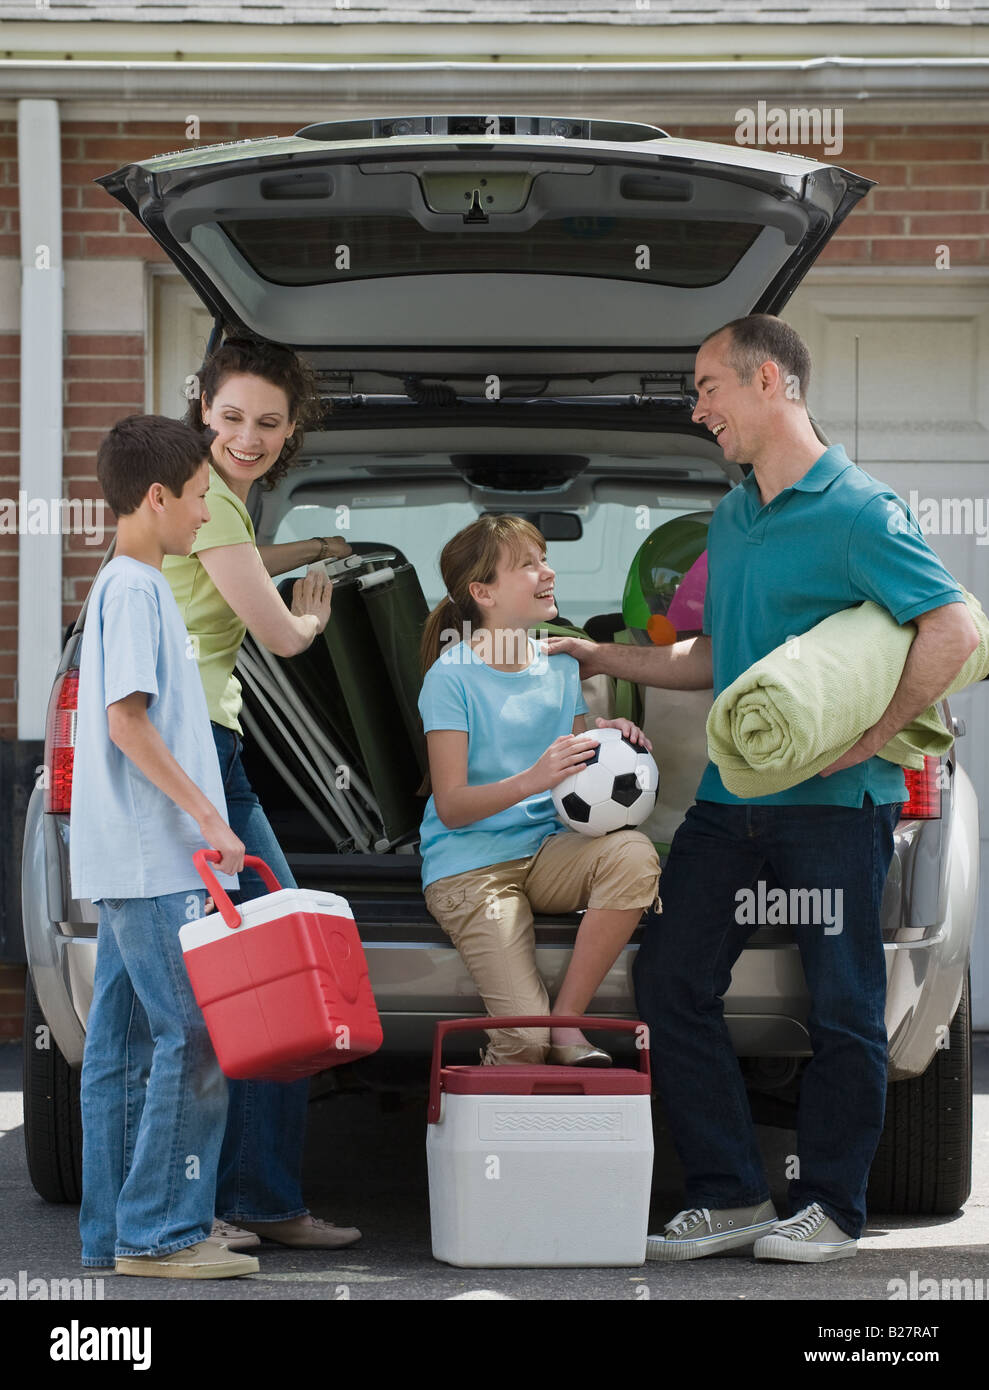 Family packing car for vacation - Stock Image